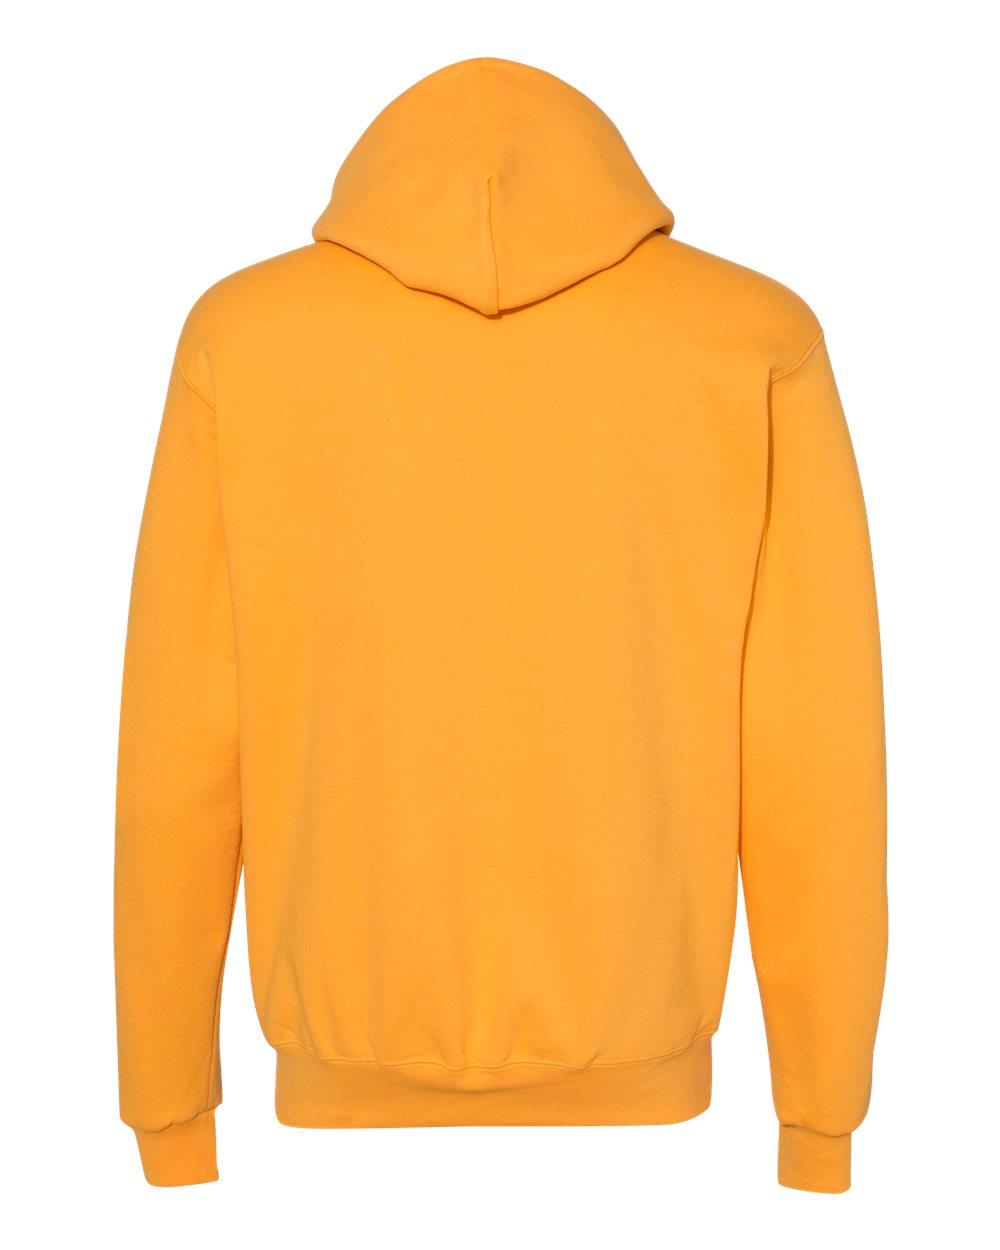 Champion-Mens-Double-Dry-Eco-Hooded-Sweatshirt-Hoodie-Pullover-S700-up-to-3XL miniature 16